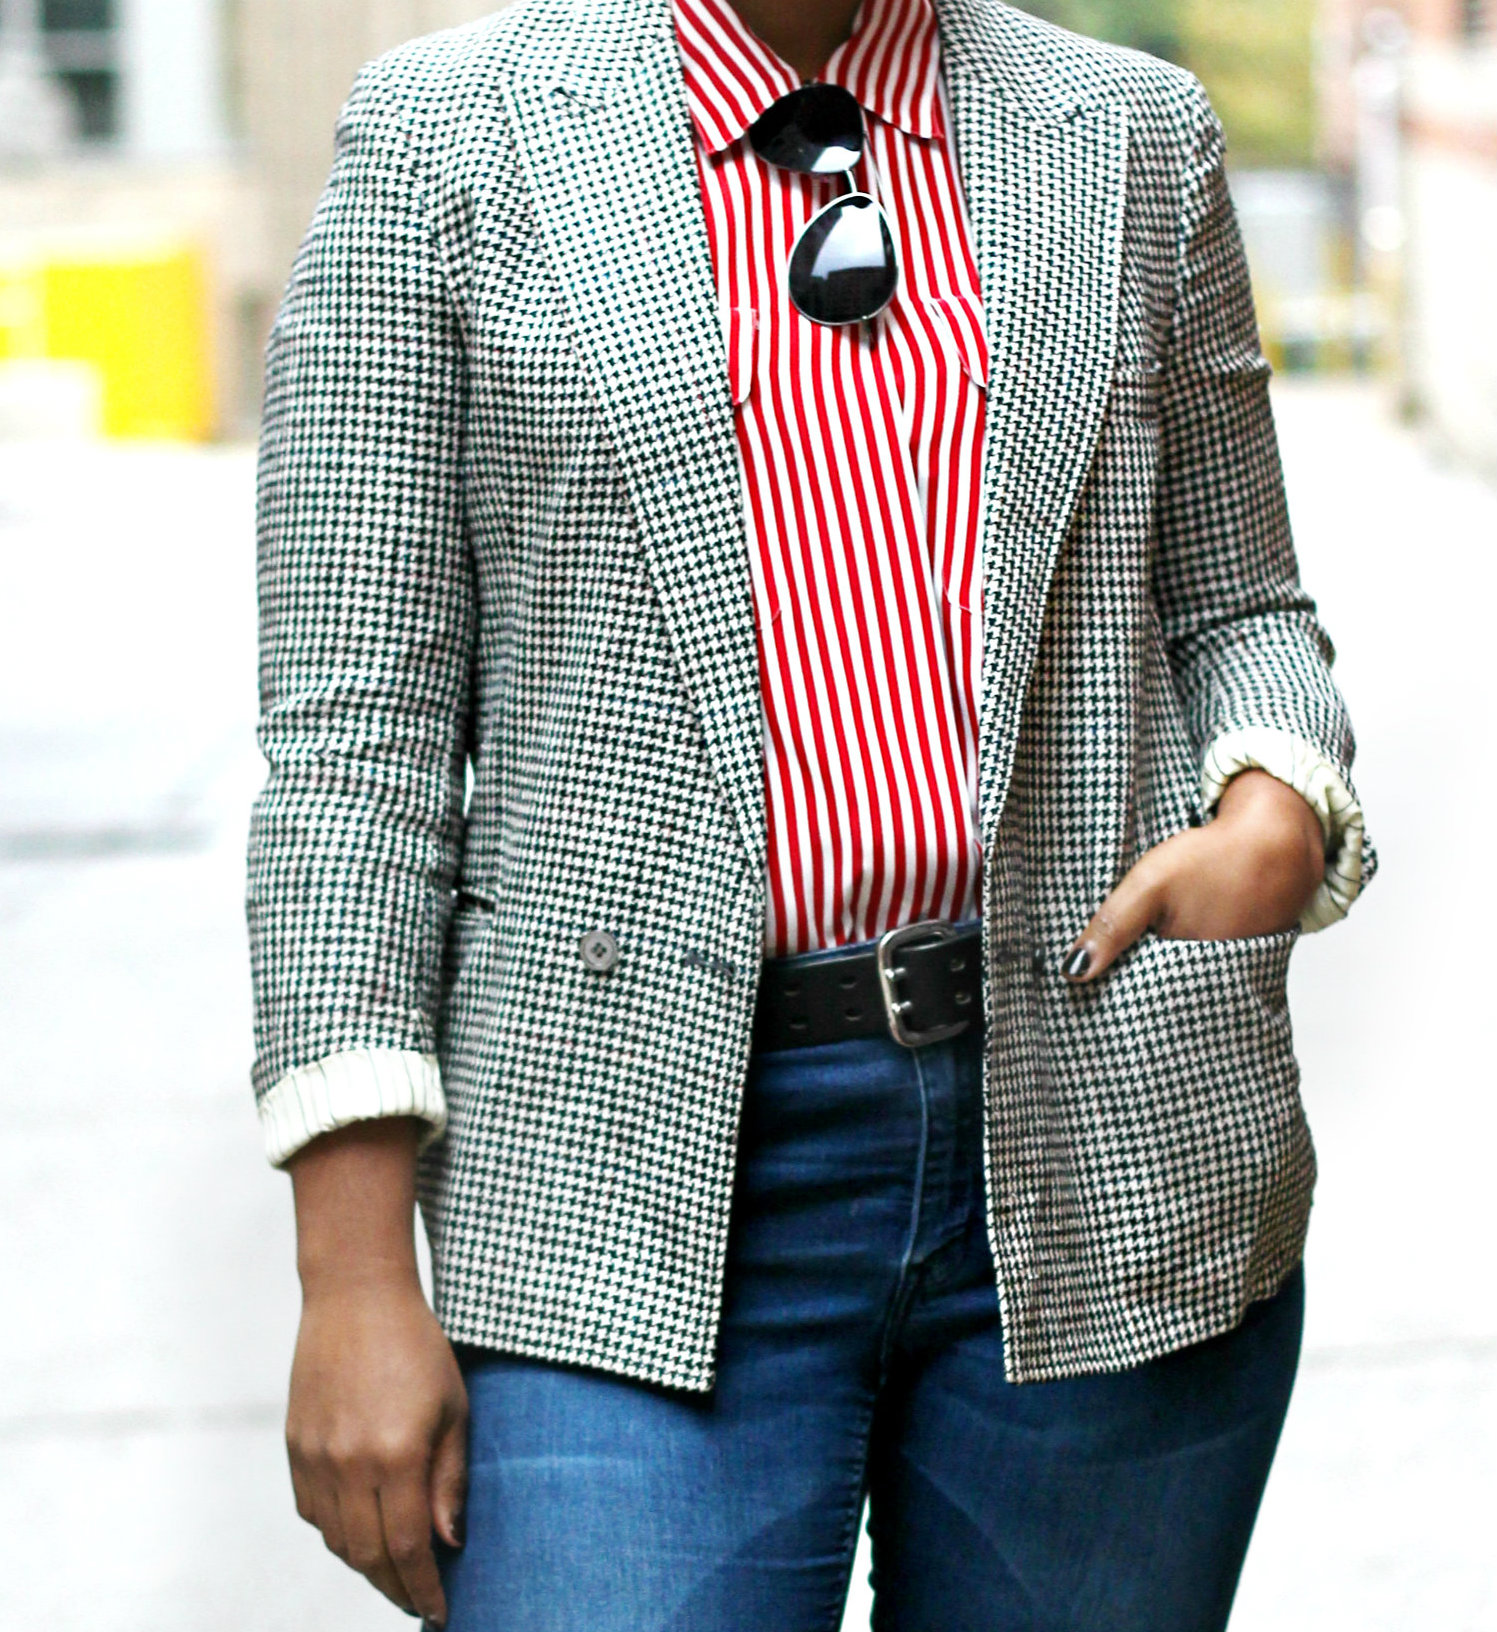 pattern mixing1 - Houndstooth and Stripes